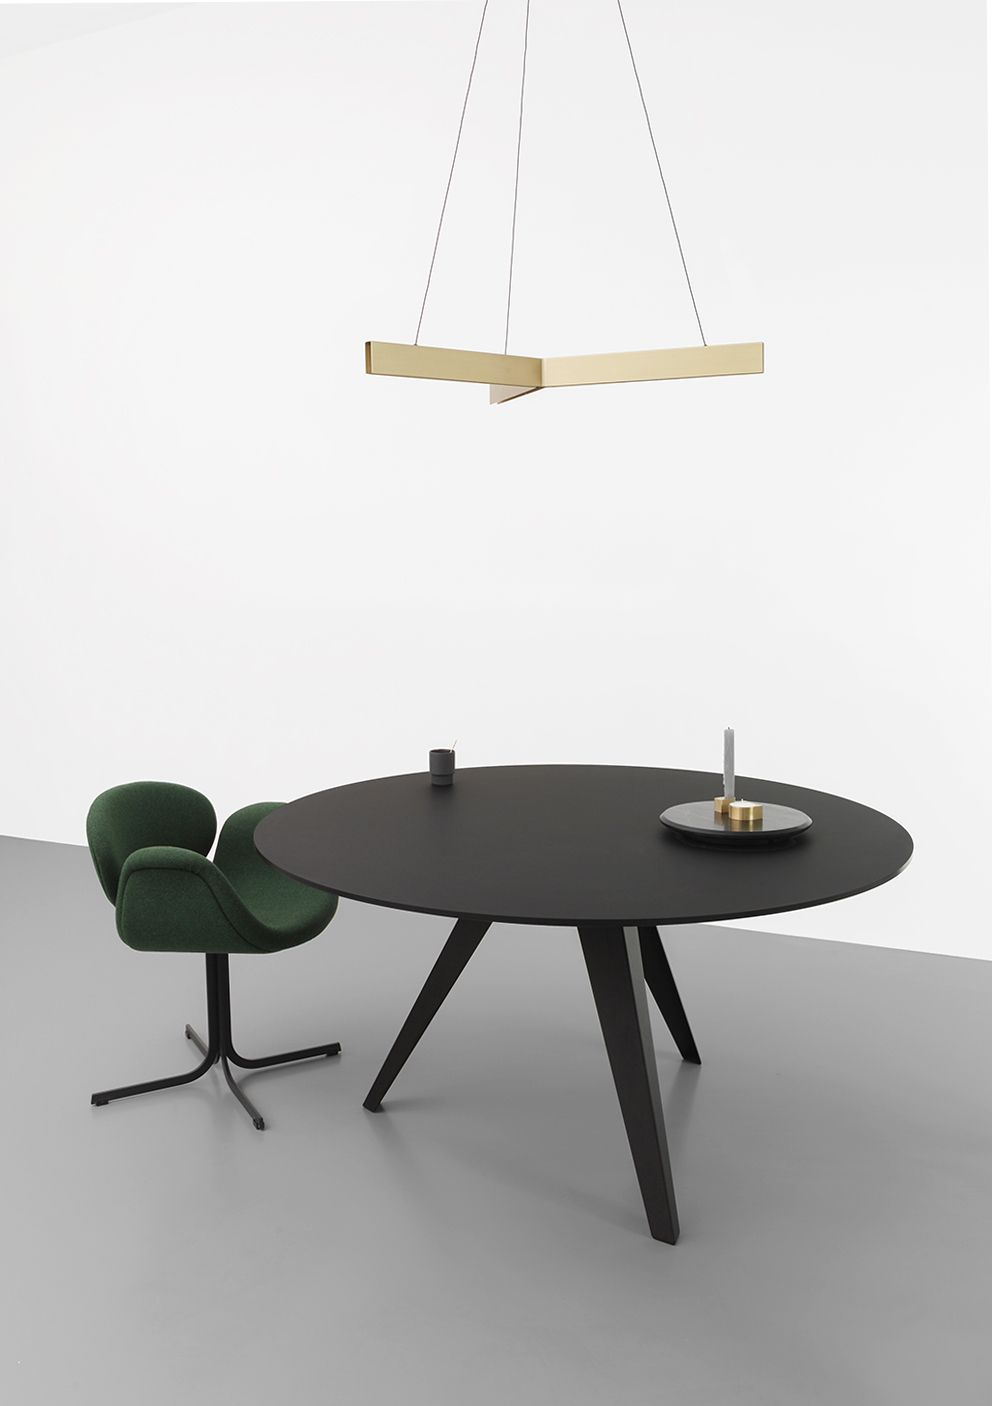 Ronde Eettafel Design.Belly Living In 2019 Eettafel Tafel Design En Interieur